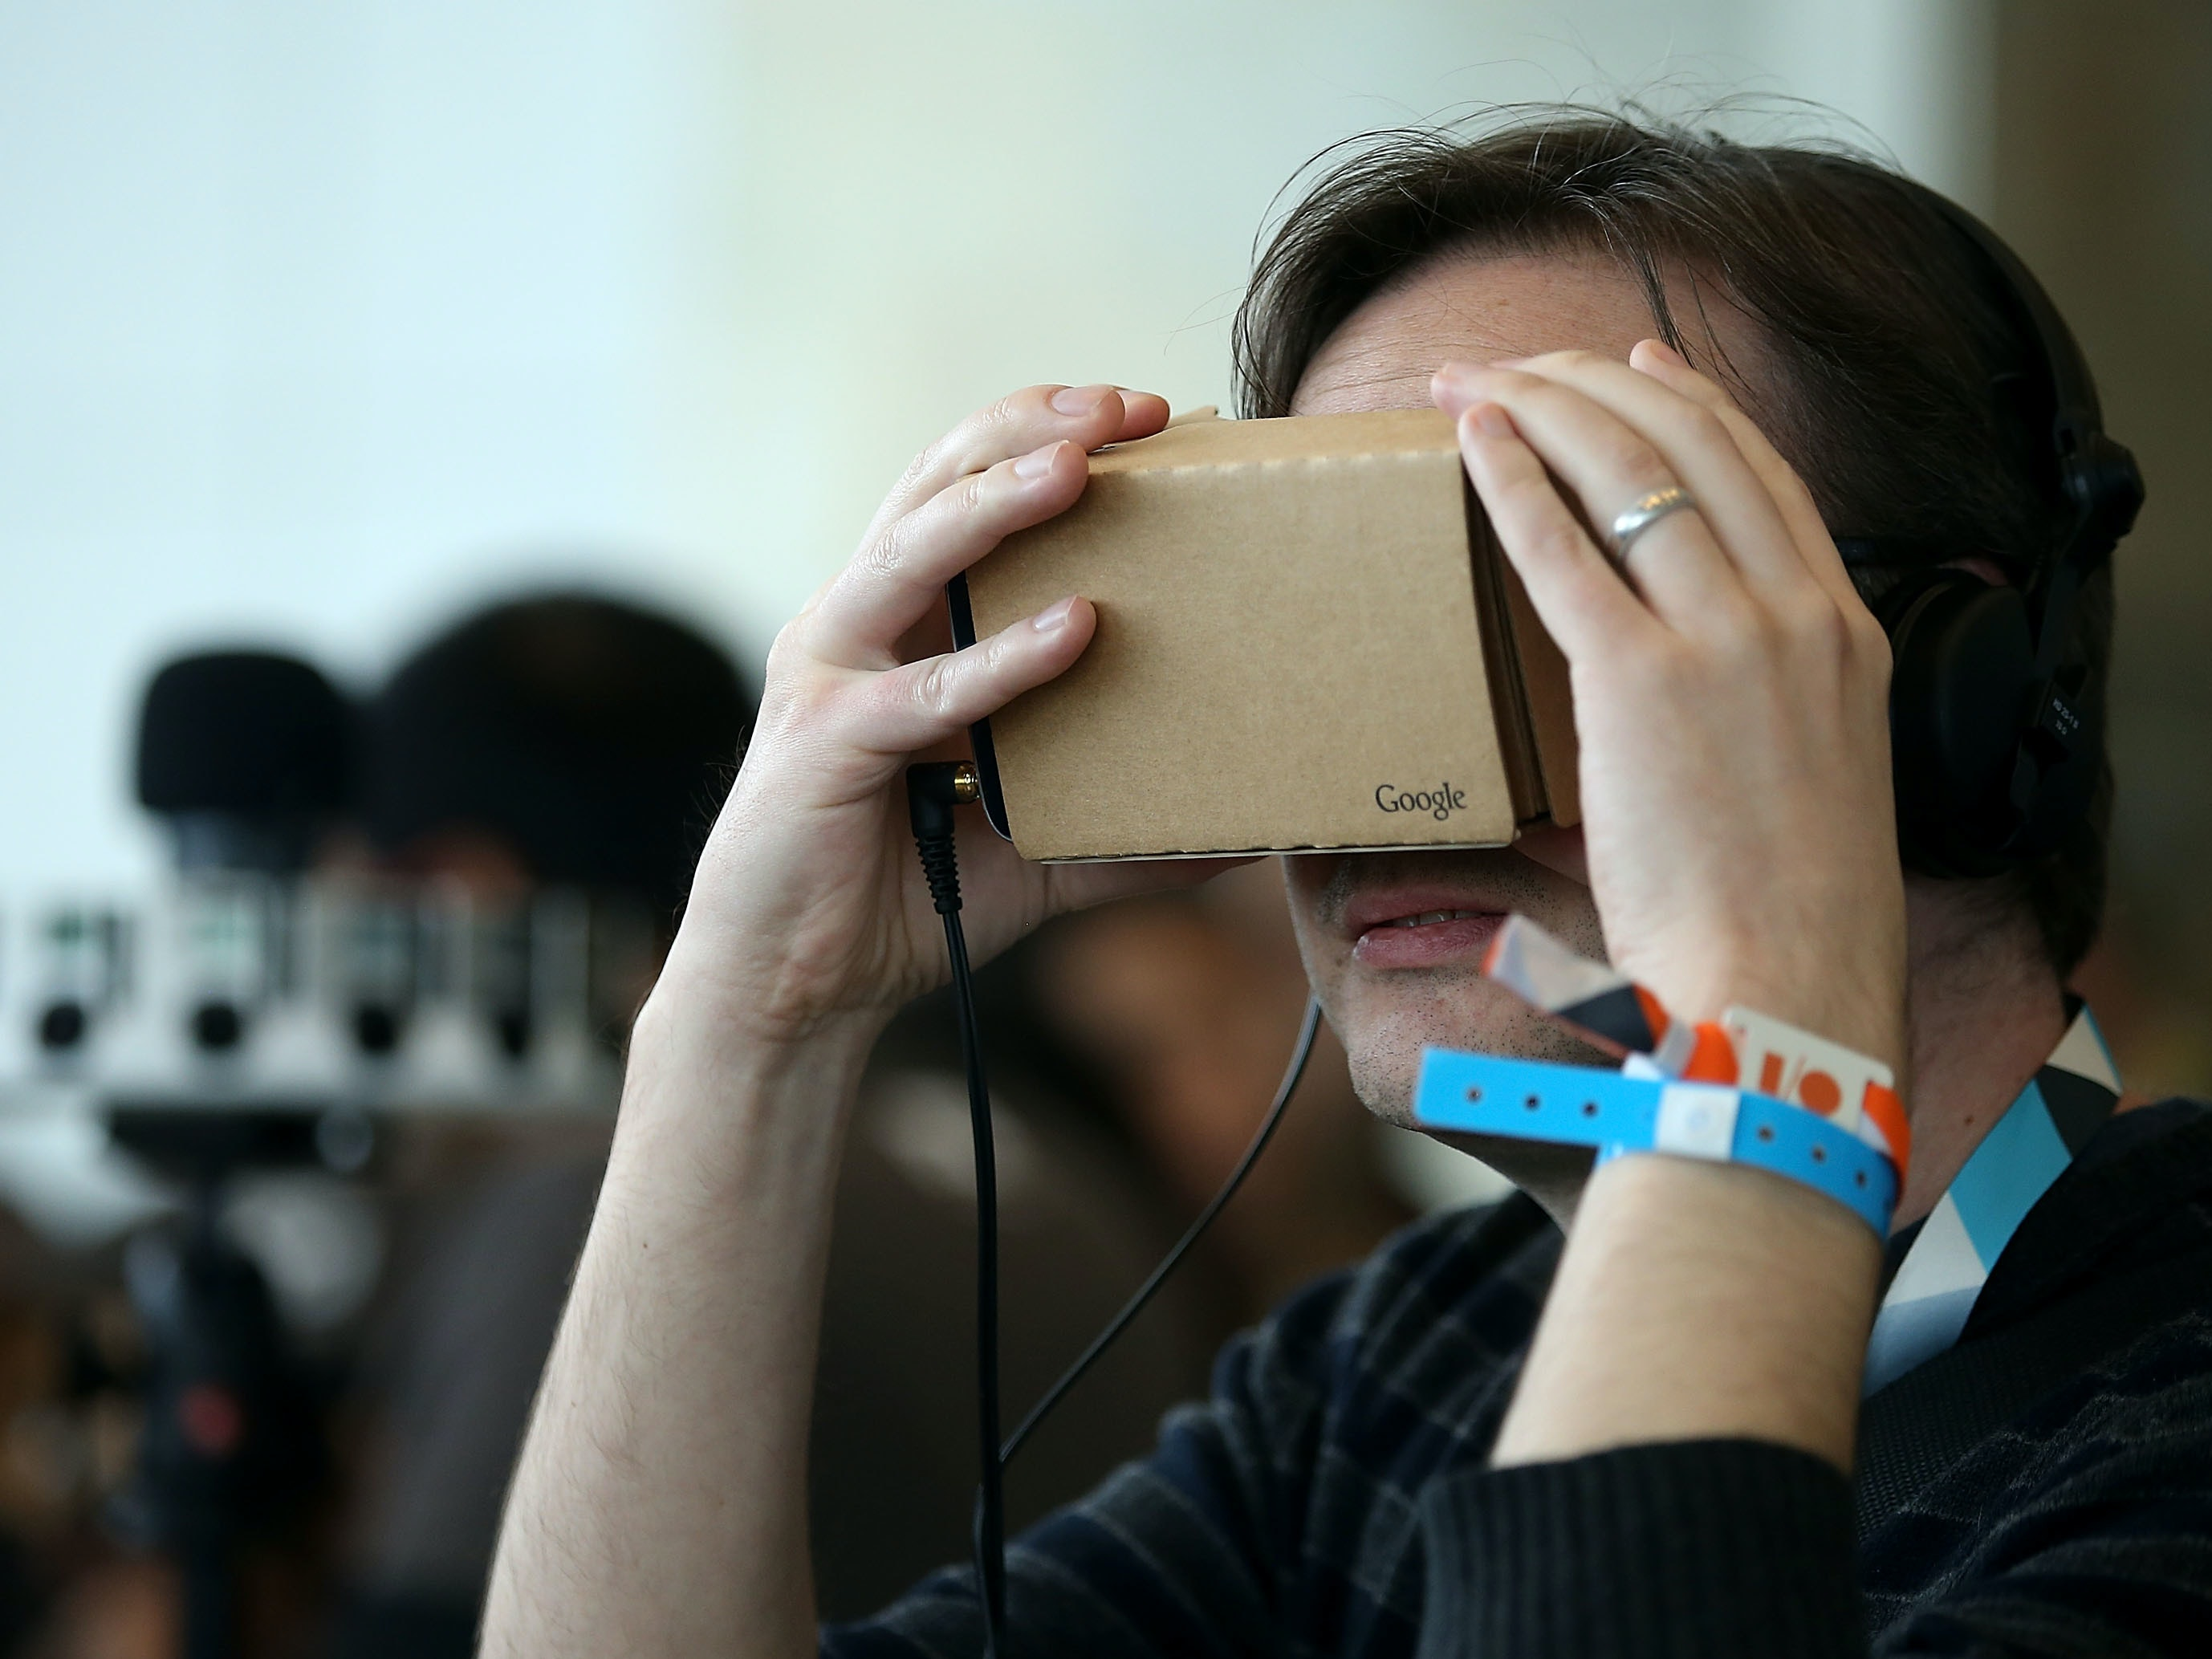 Watch Google I/O Live in 360-Degree Virtual Reality Video on Cardboard